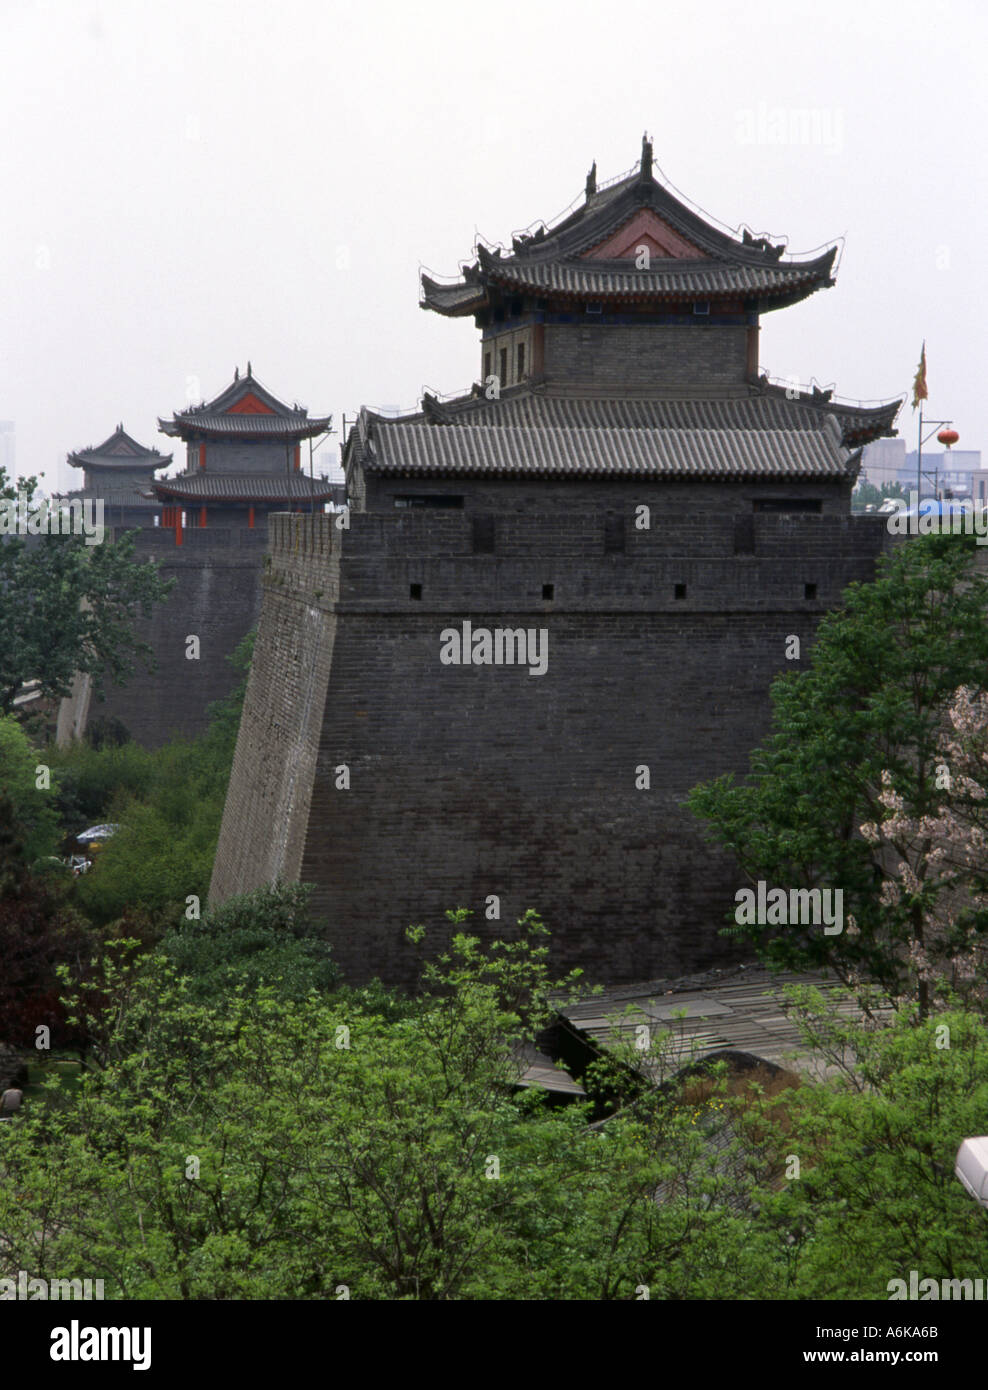 City Walls Xi'an Xian Great Ancient Capital of China Shaanxi